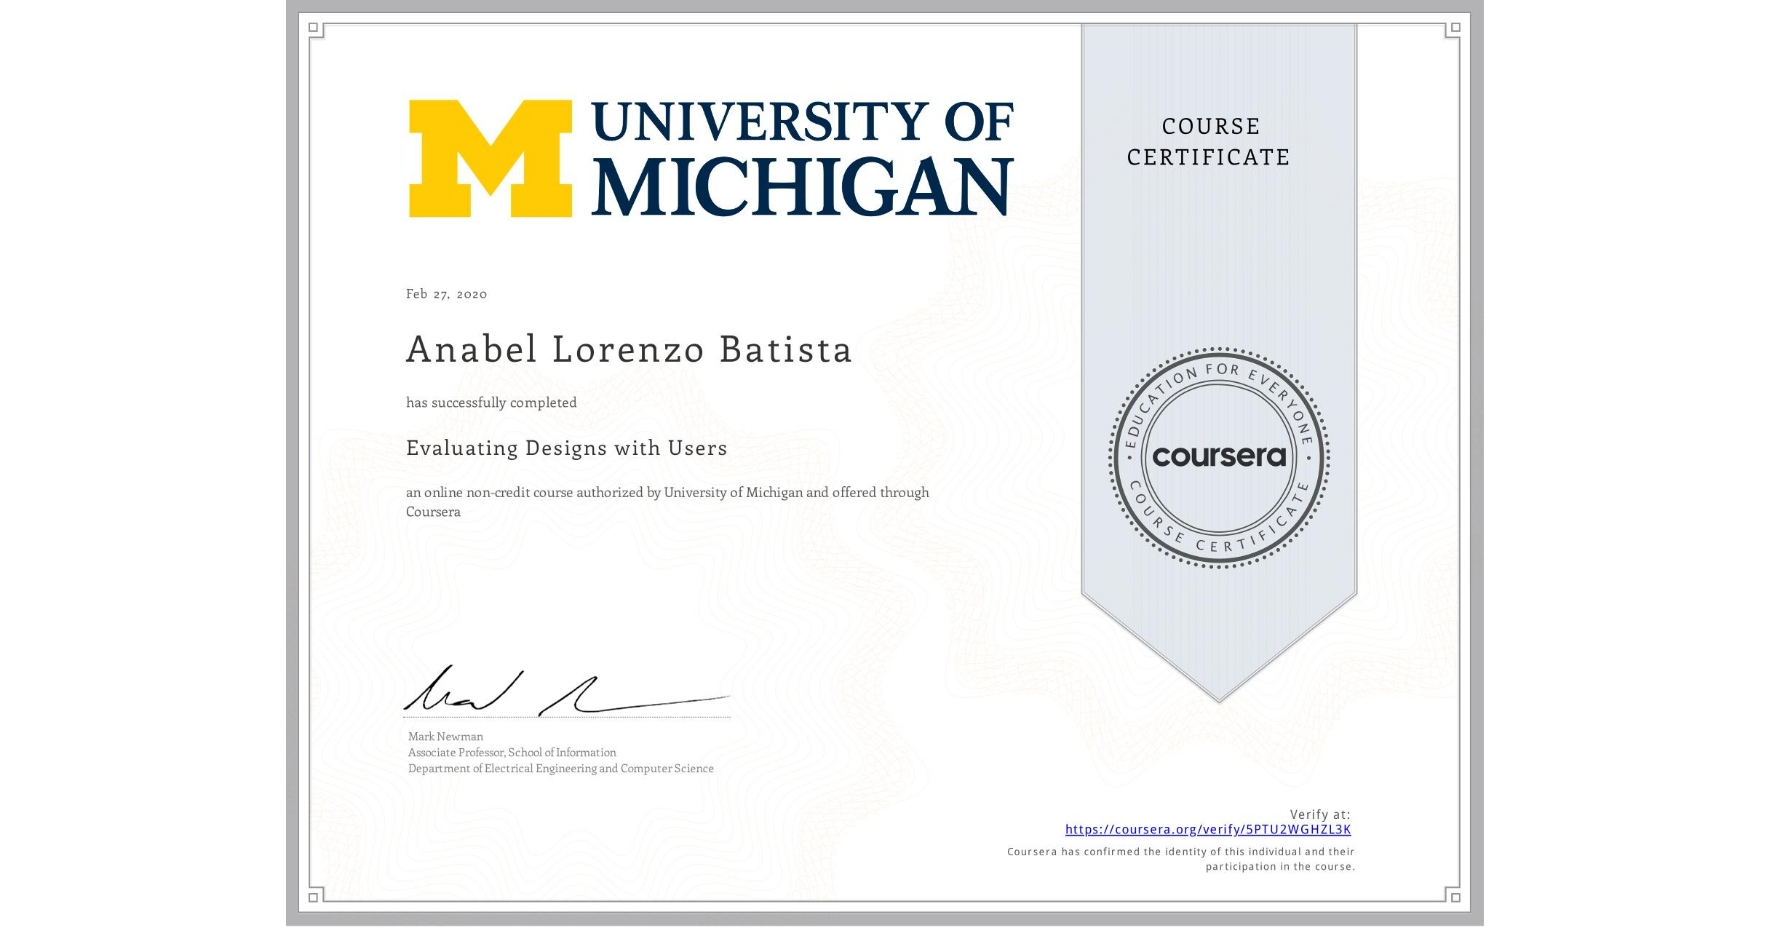 View certificate for Anabel Lorenzo Batista, Evaluating Designs with Users, an online non-credit course authorized by University of Michigan and offered through Coursera